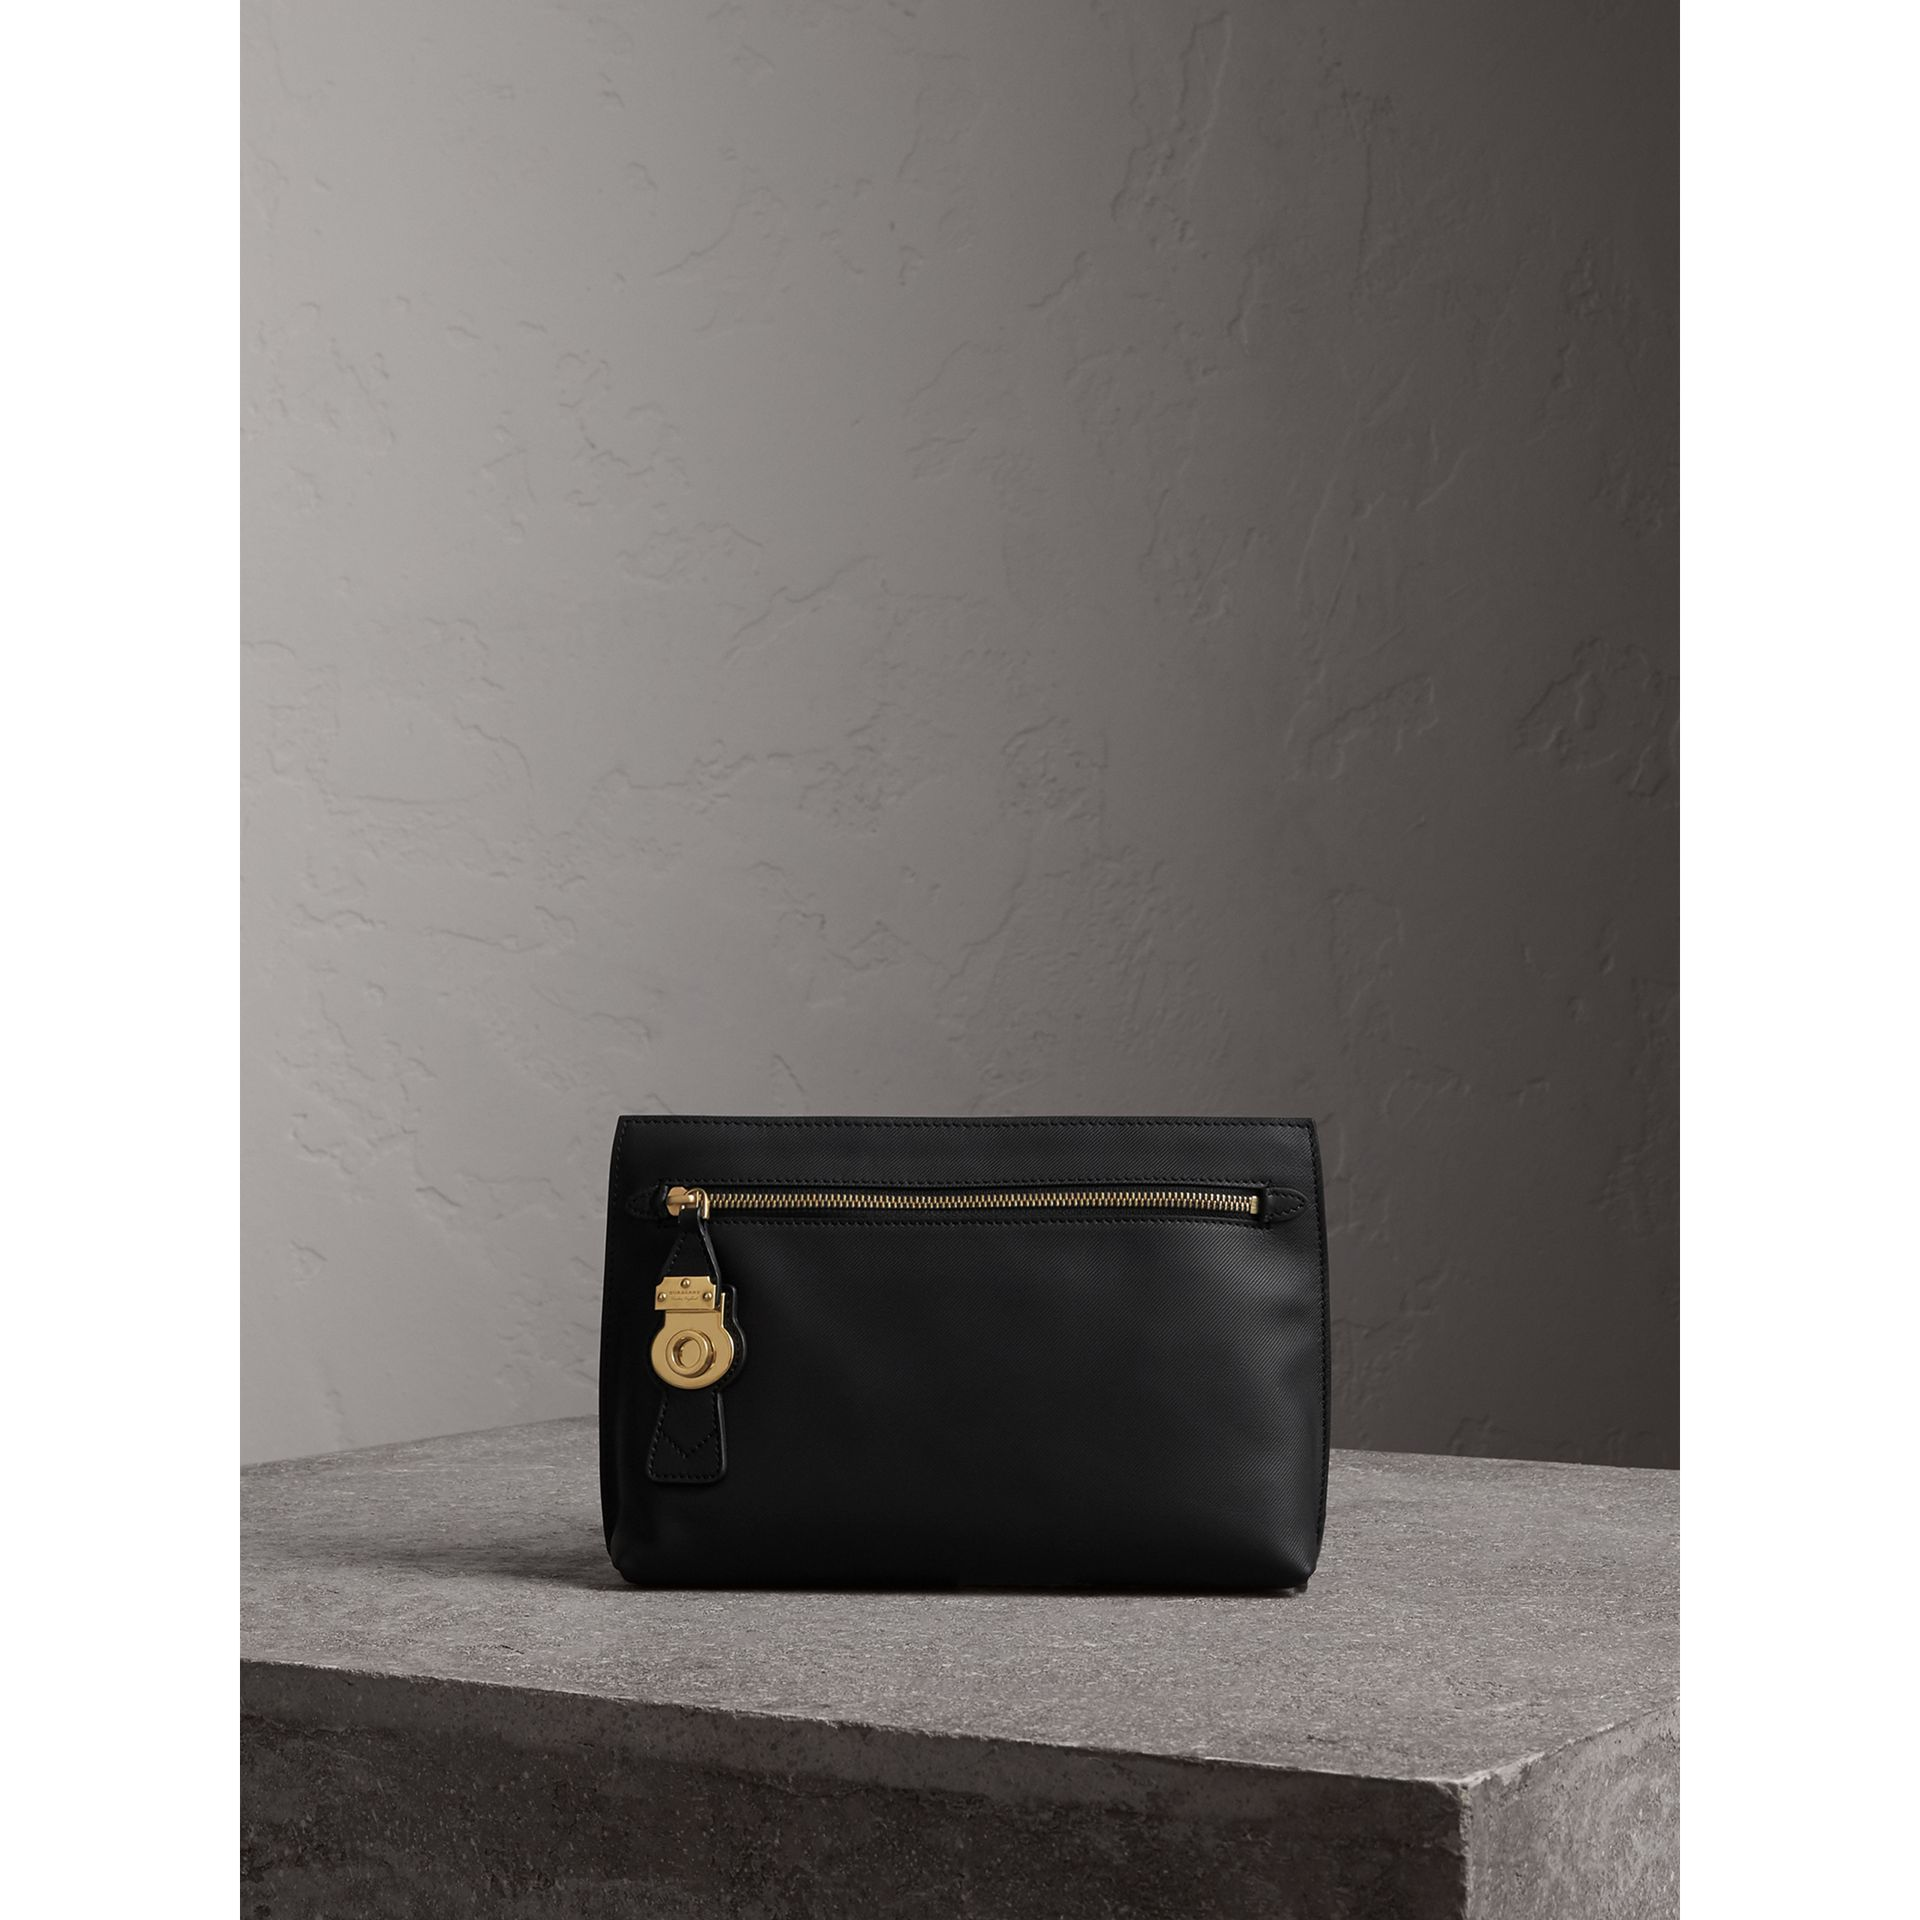 Trench Leather Wristlet Pouch in Black - Women | Burberry Hong Kong - gallery image 1